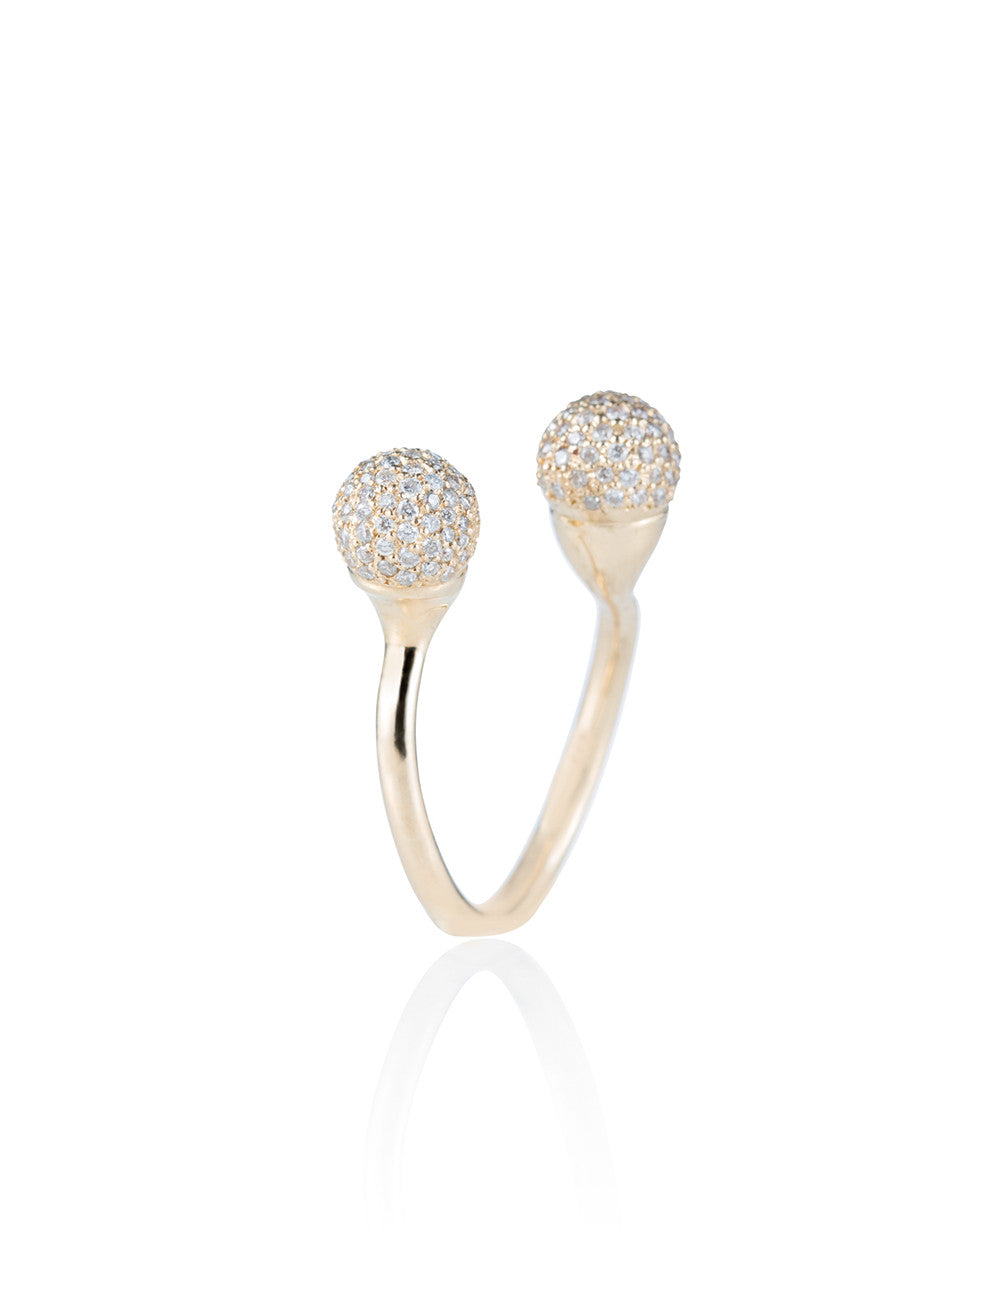 Dual Pave Ball Ring